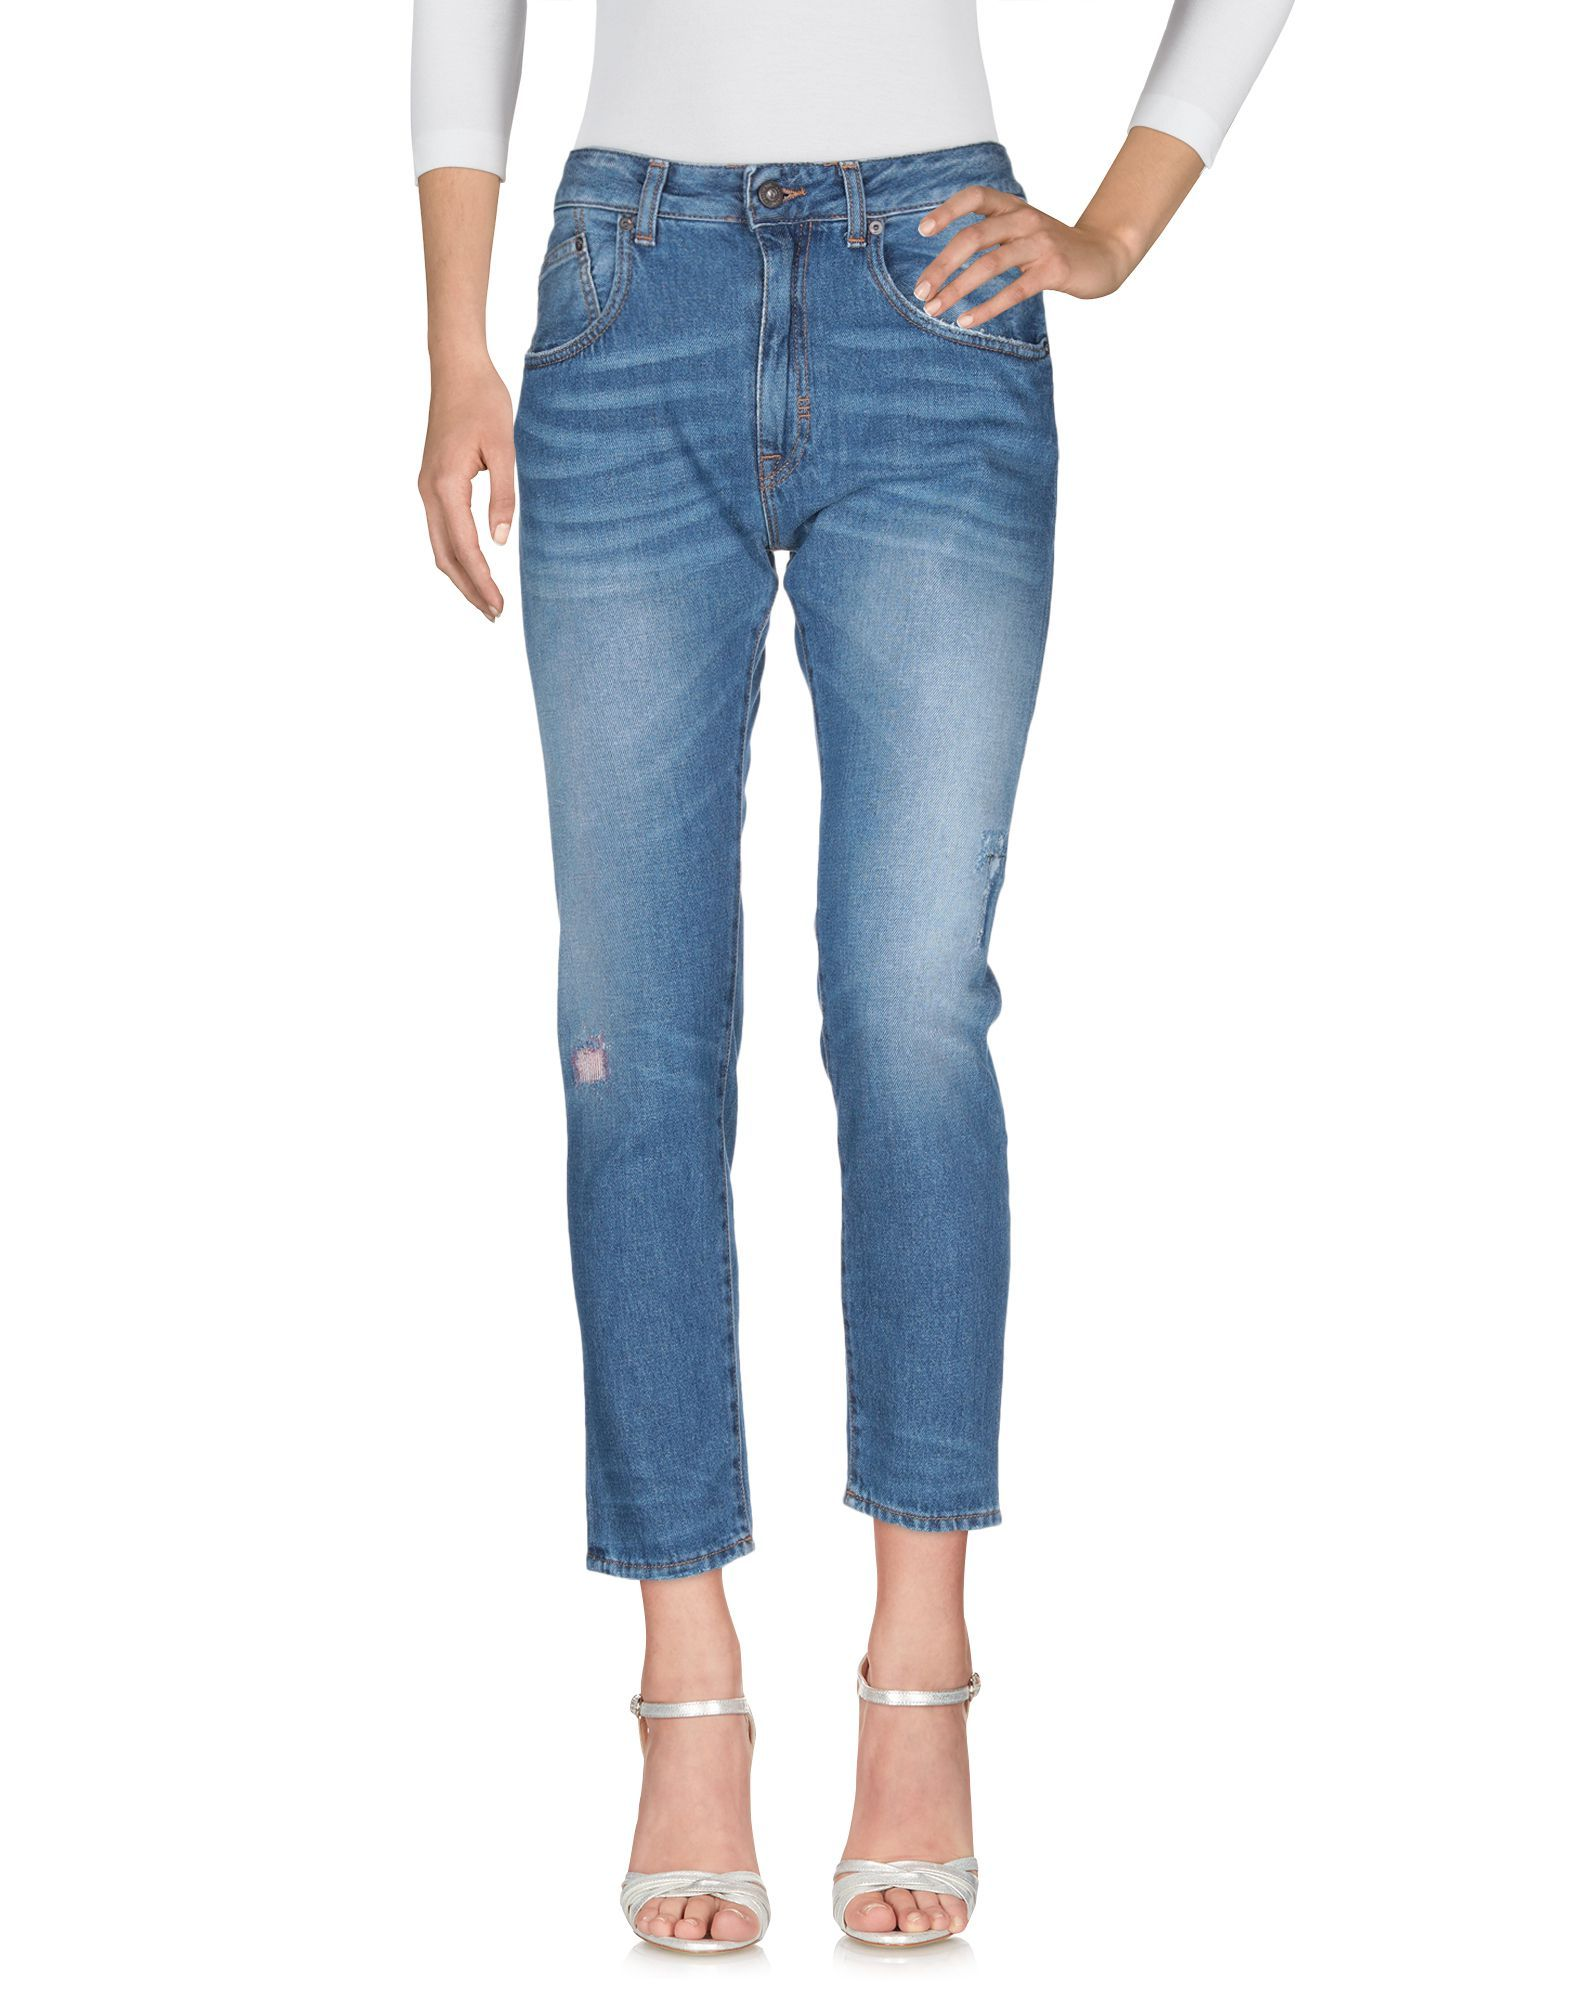 Meltin Pot Blue Cotton High Waisted Jeans